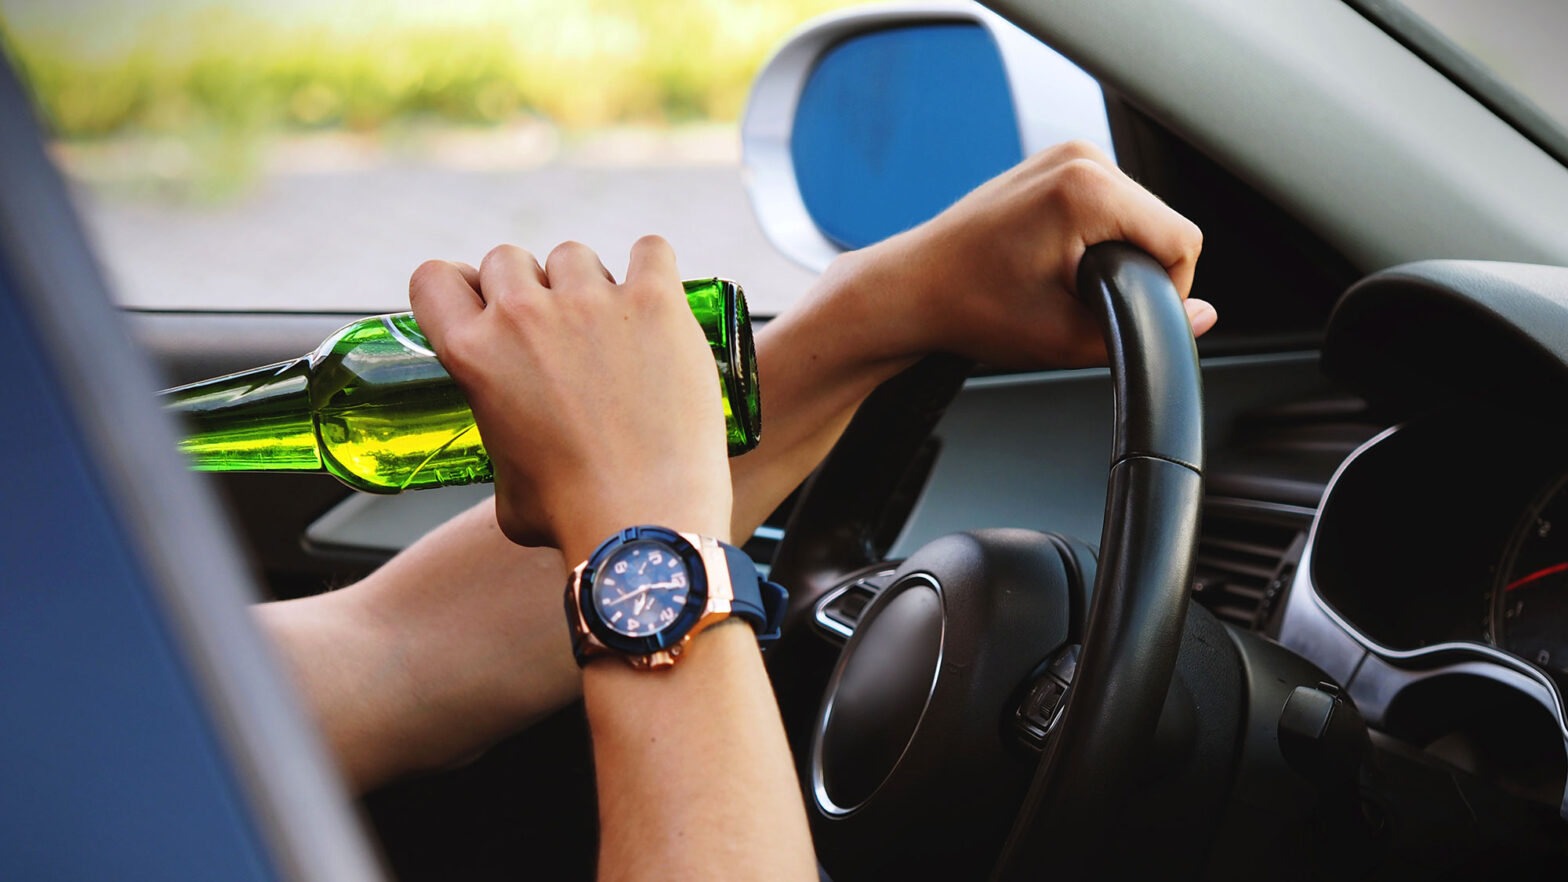 The Reasons Why It's Dangerous To Drive Under The Influence